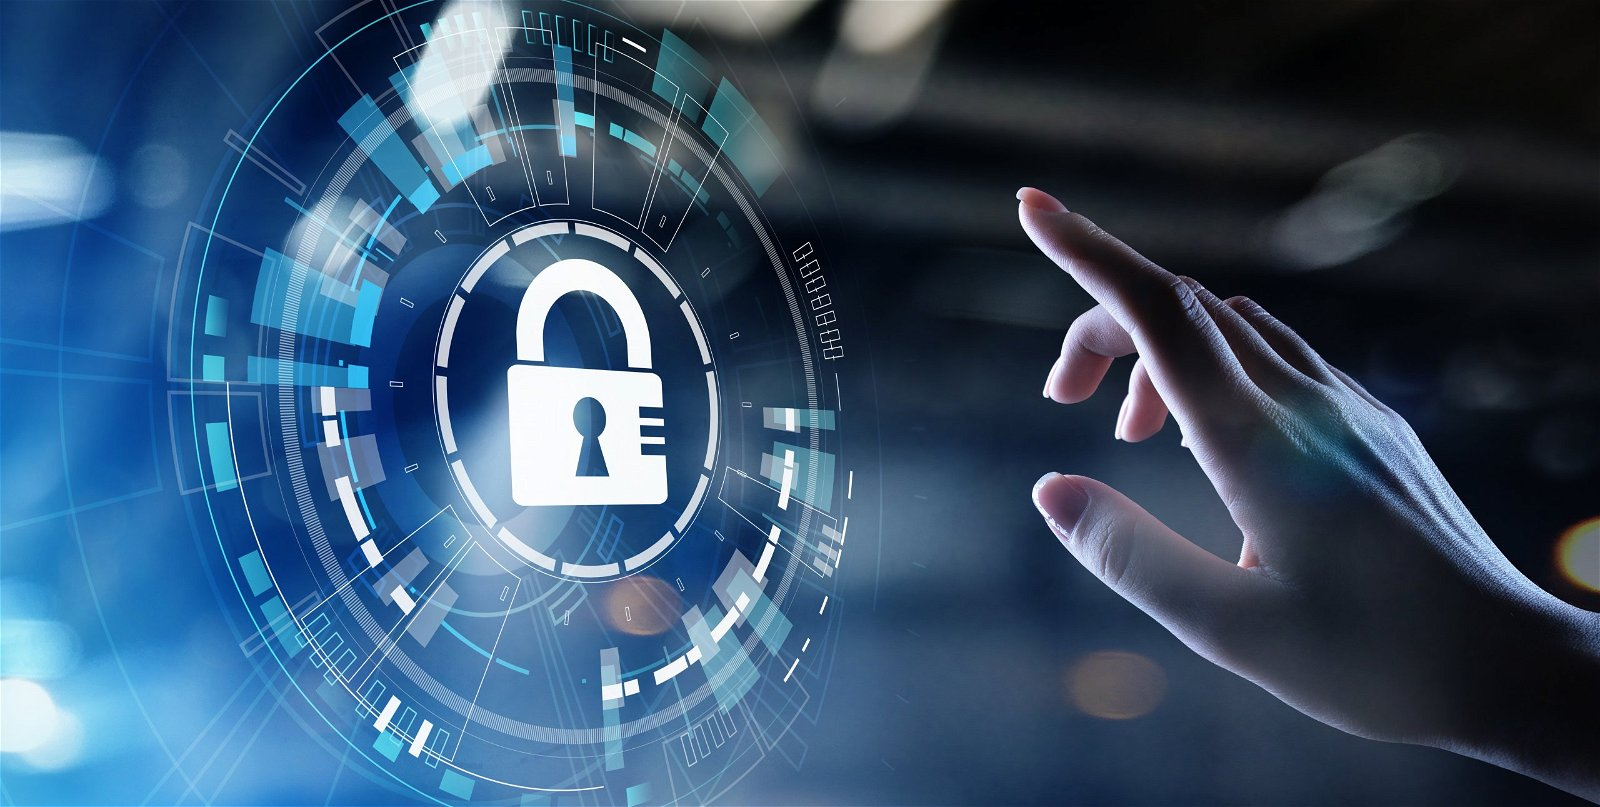 CyberSecurity Data privacy 5G IoT Cloud